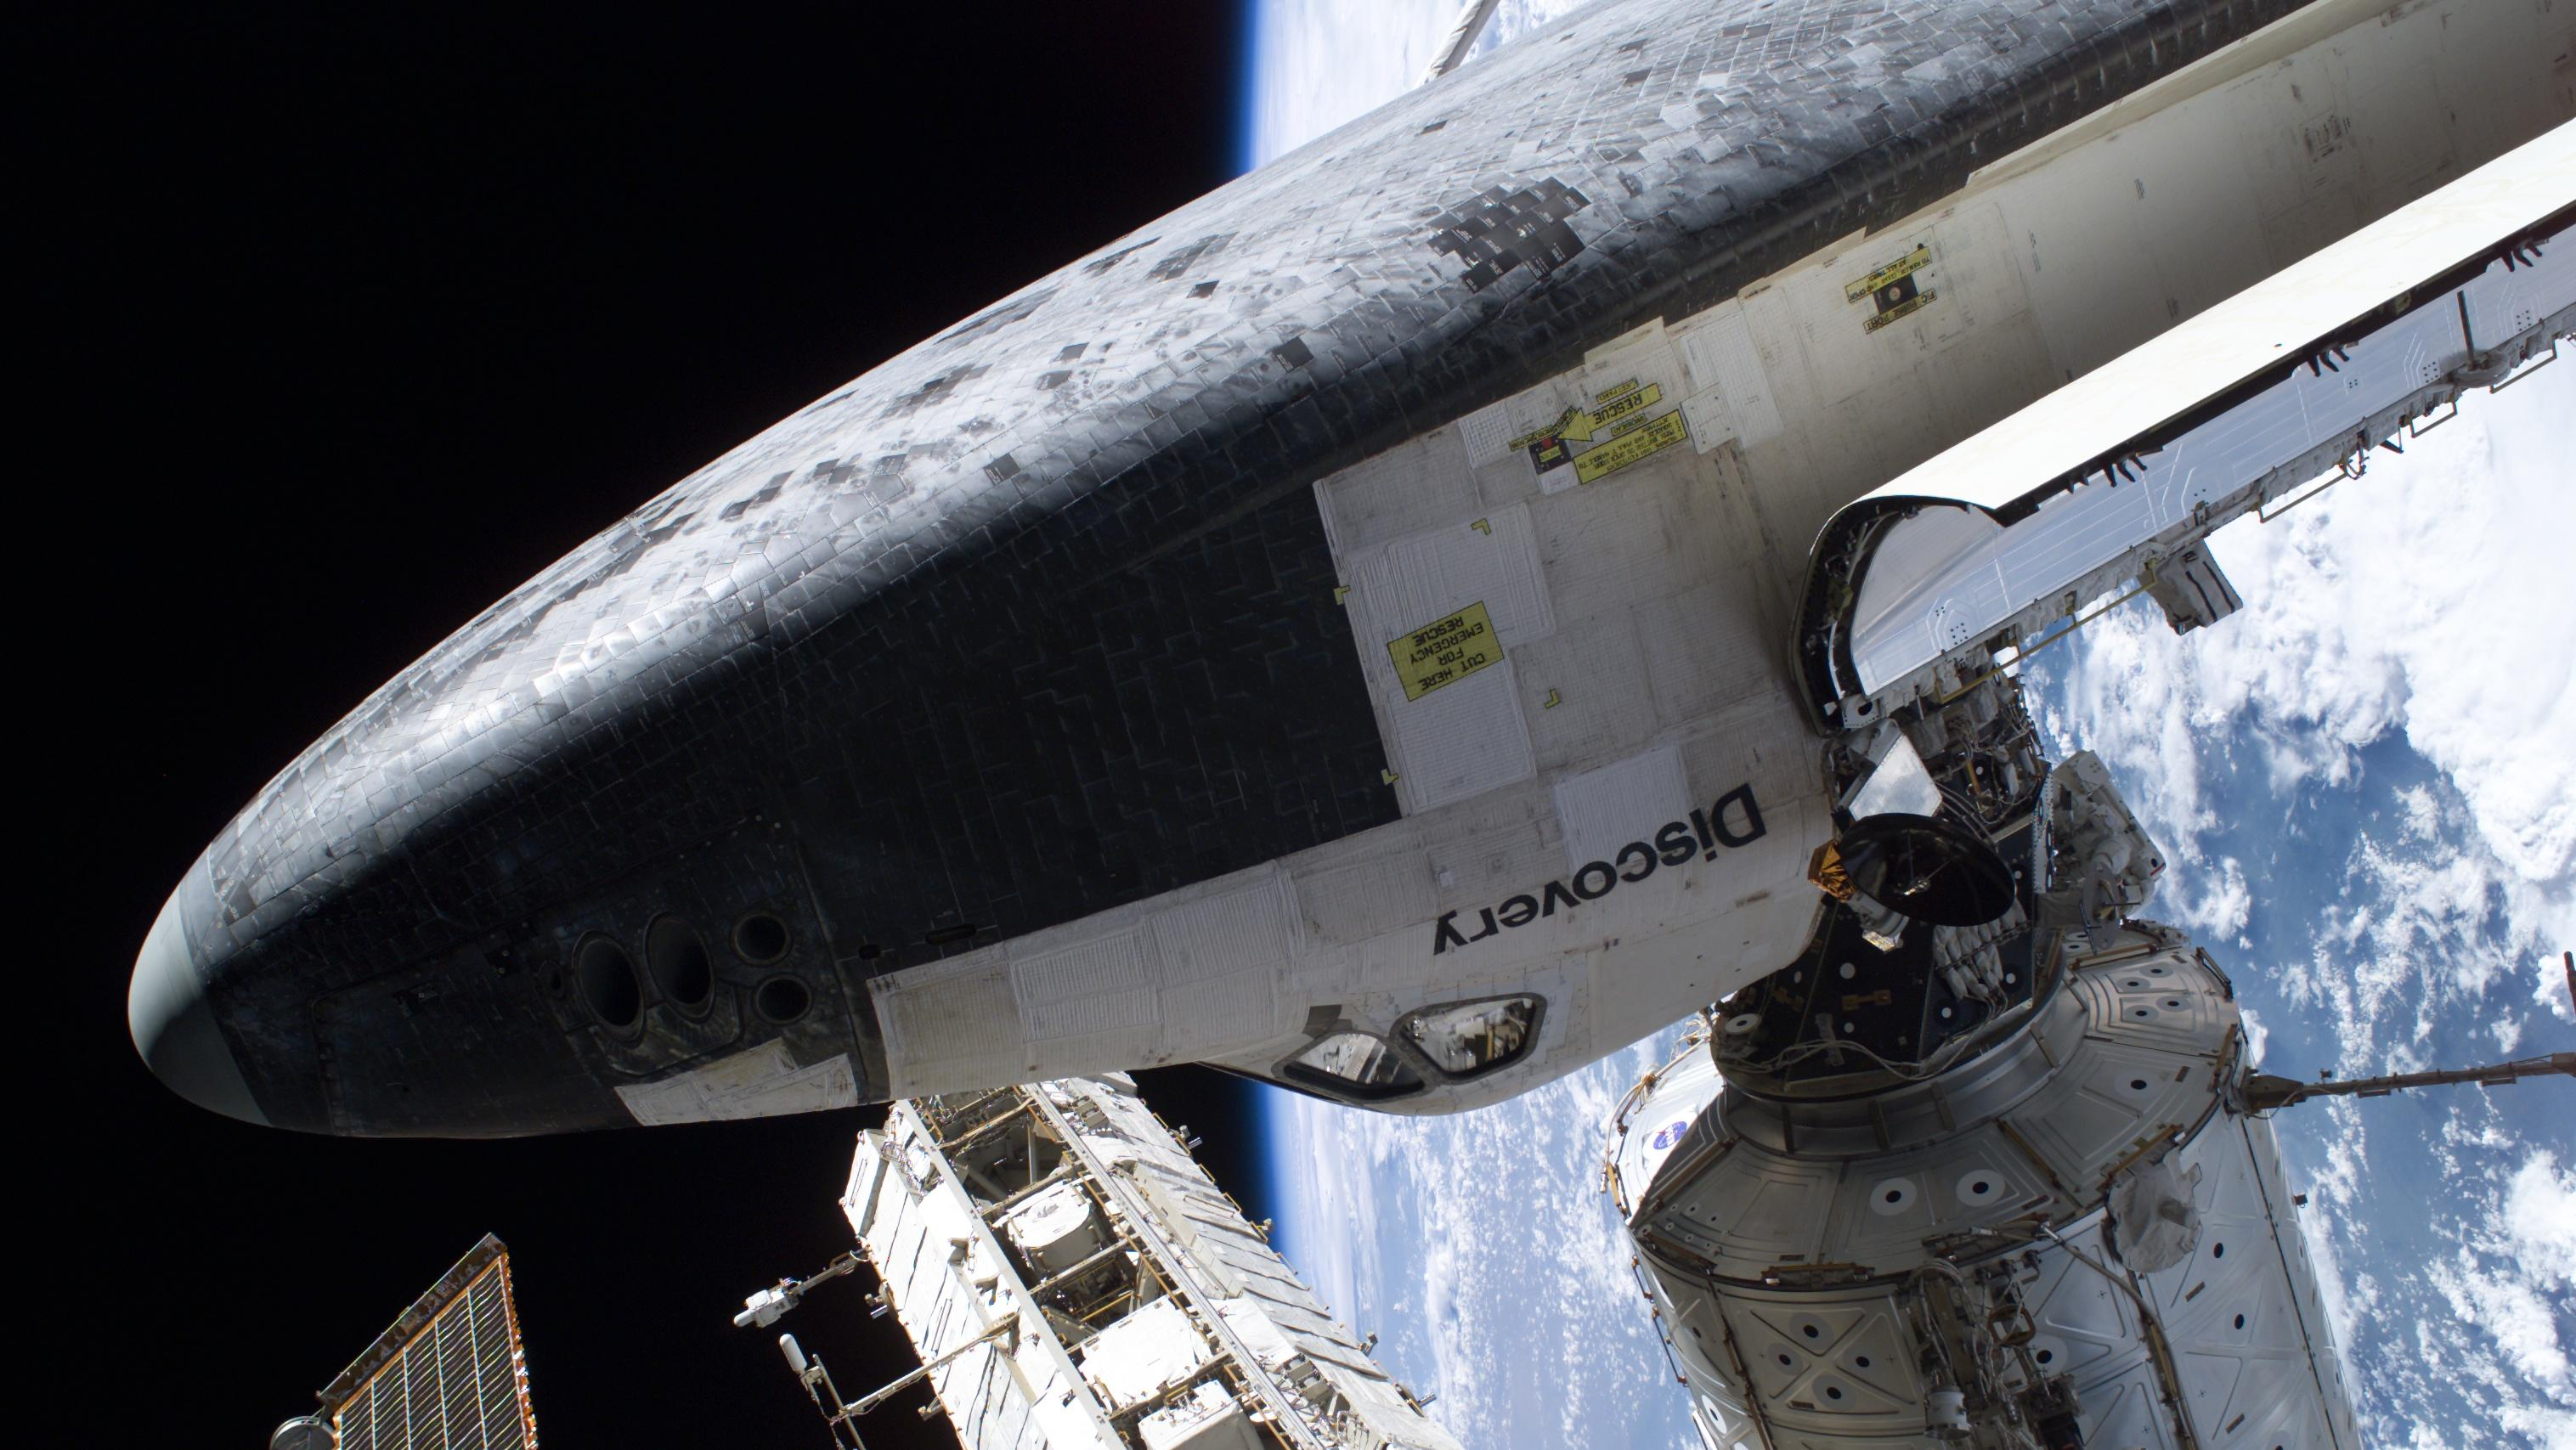 space shuttle discovery images - photo #28